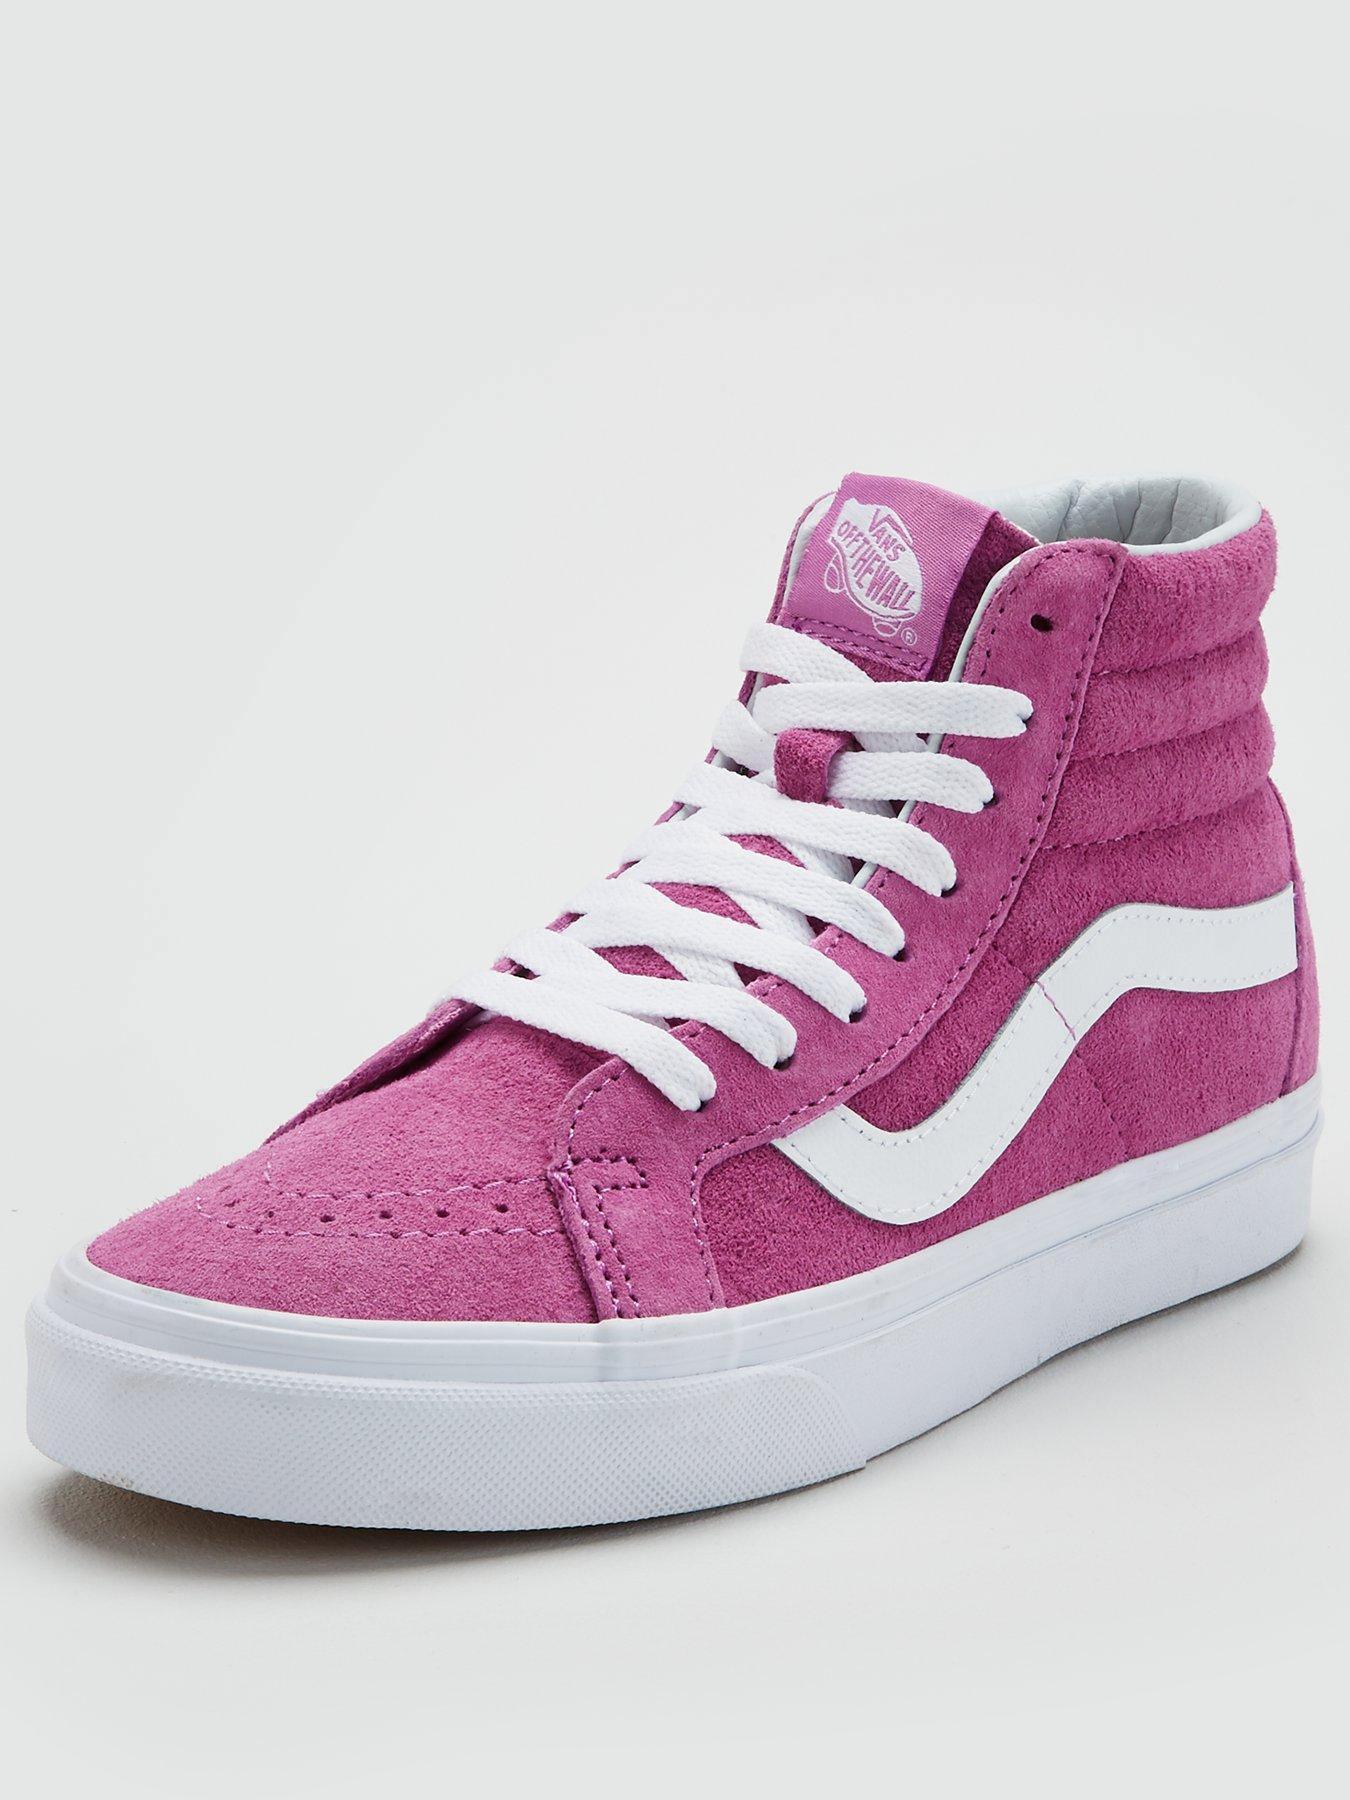 size 40 477ff f0b7a co Vans Shop uk Very Hos Shoes Authentic CB4xZqwH